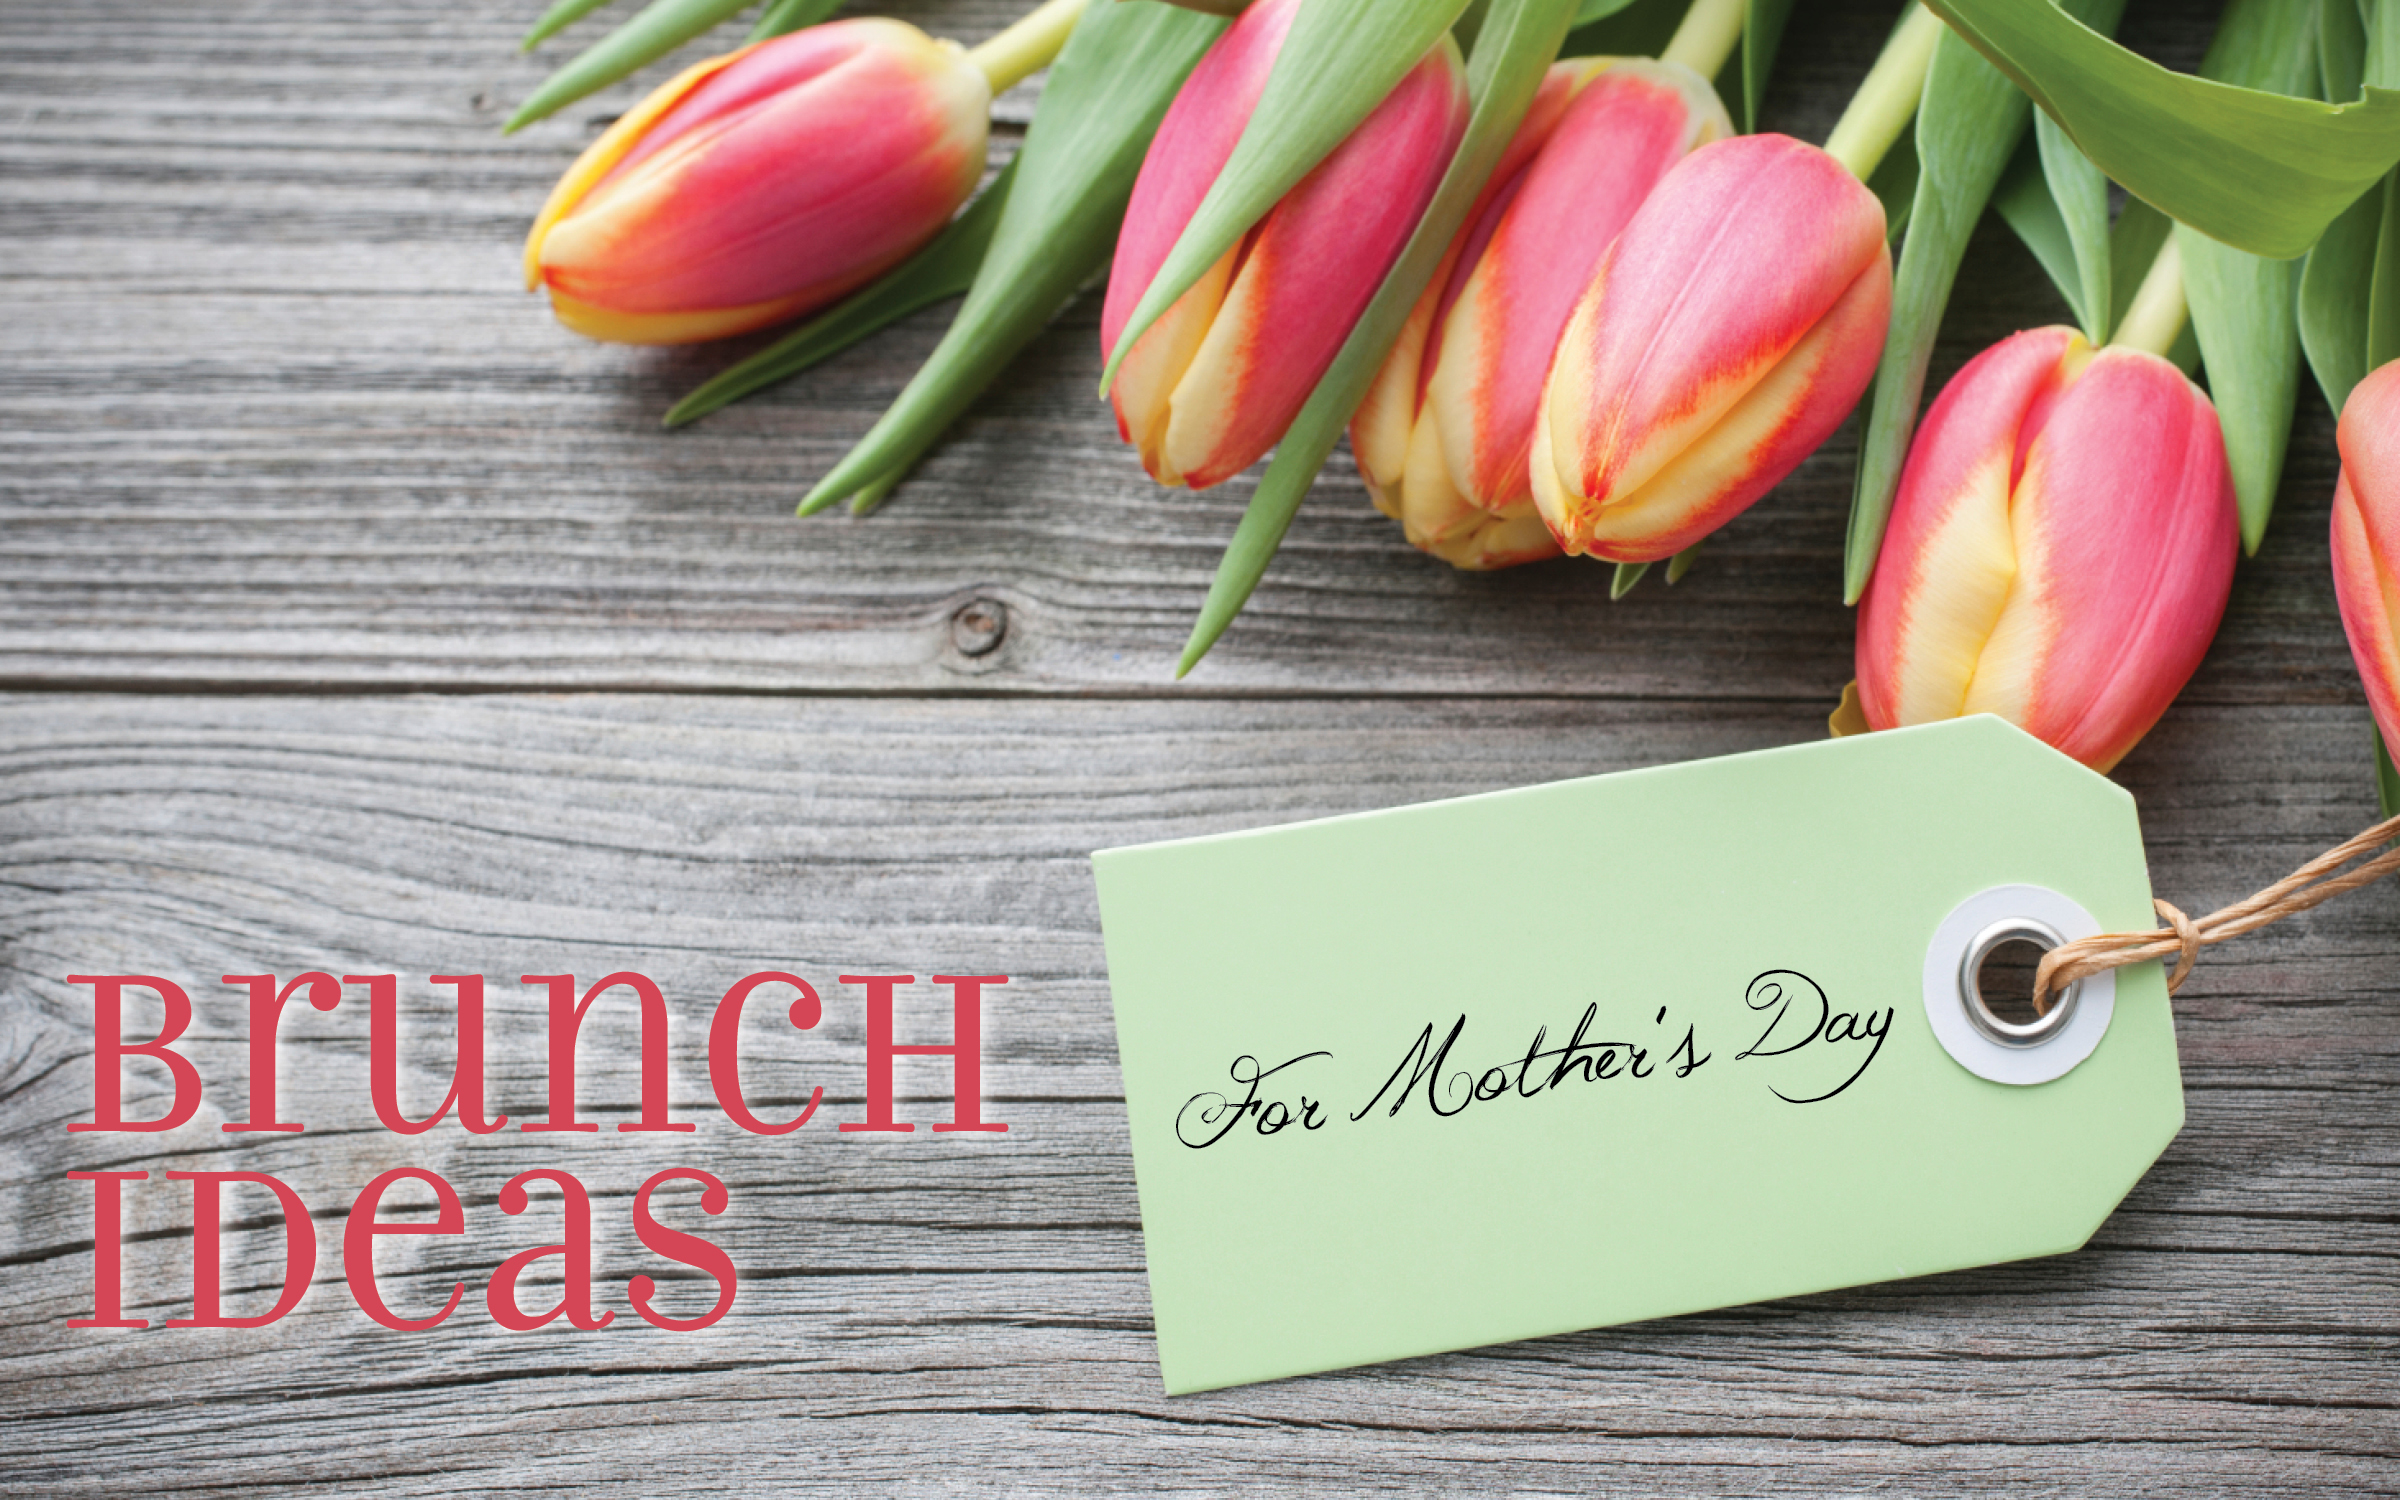 Brunch ideas for mother s day for Breakfast ideas for mom